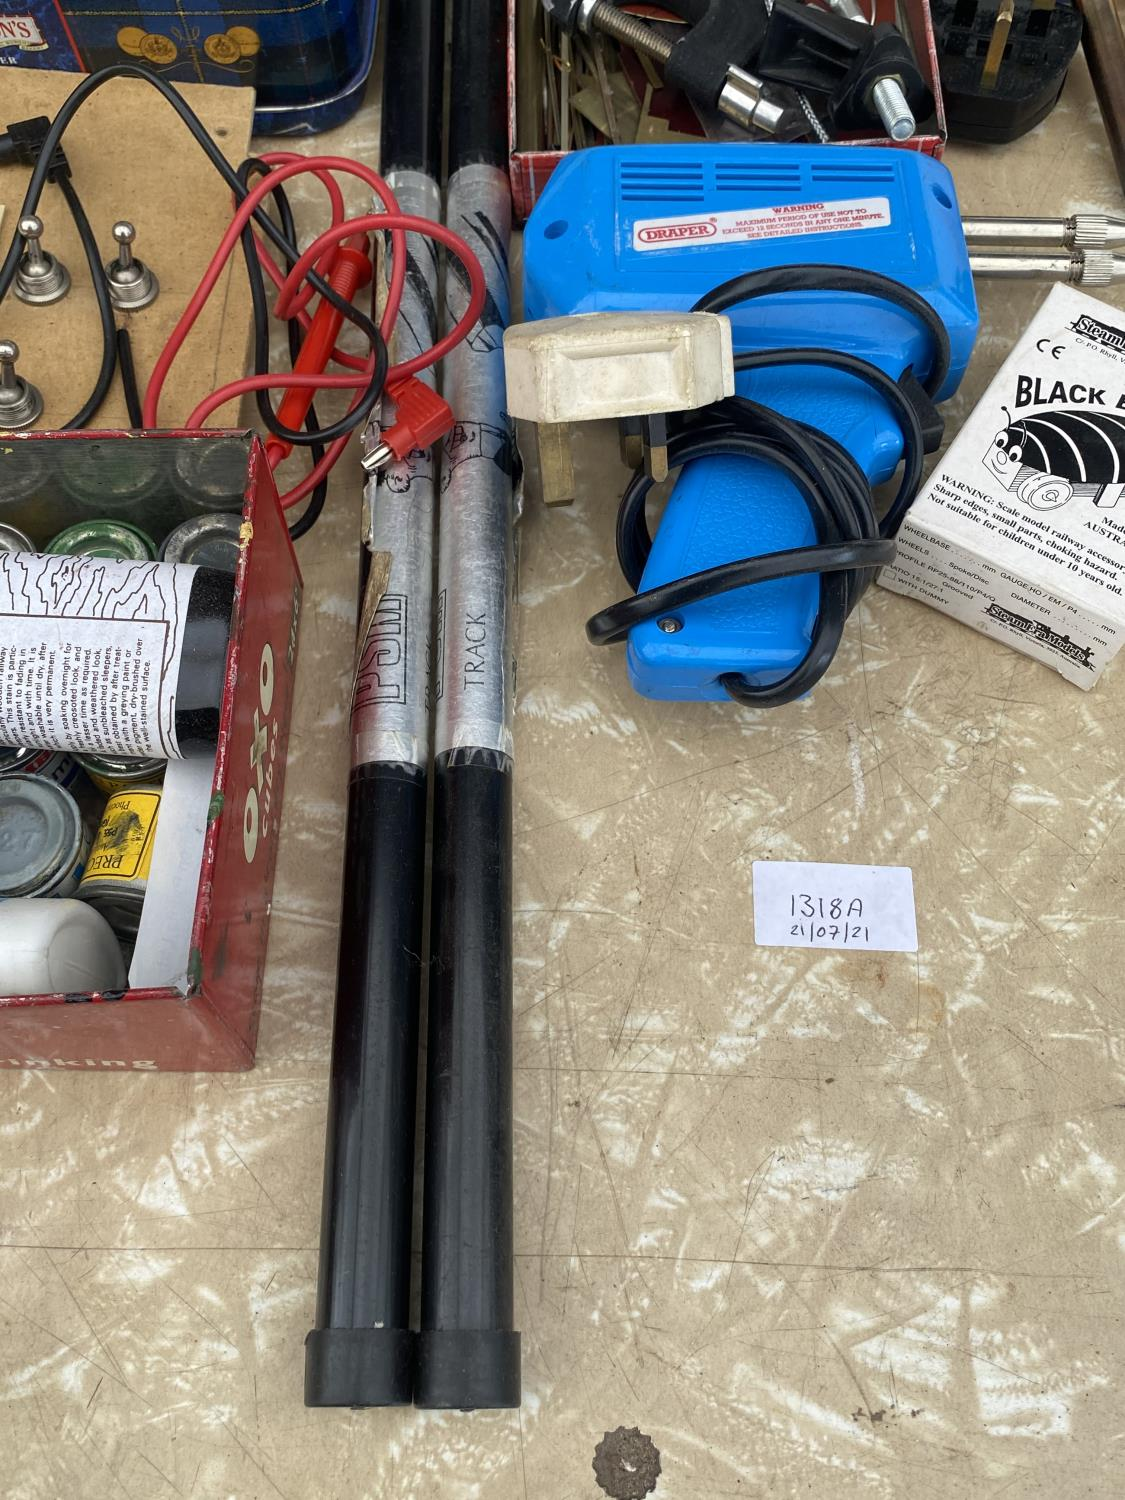 AN ASSORTMENT OF ARTS AND CRAFTS EQUIPMENT TO INCLUDE SOLDERING IRONS, A CLAMP AND MODEL PAINT AND - Image 6 of 6